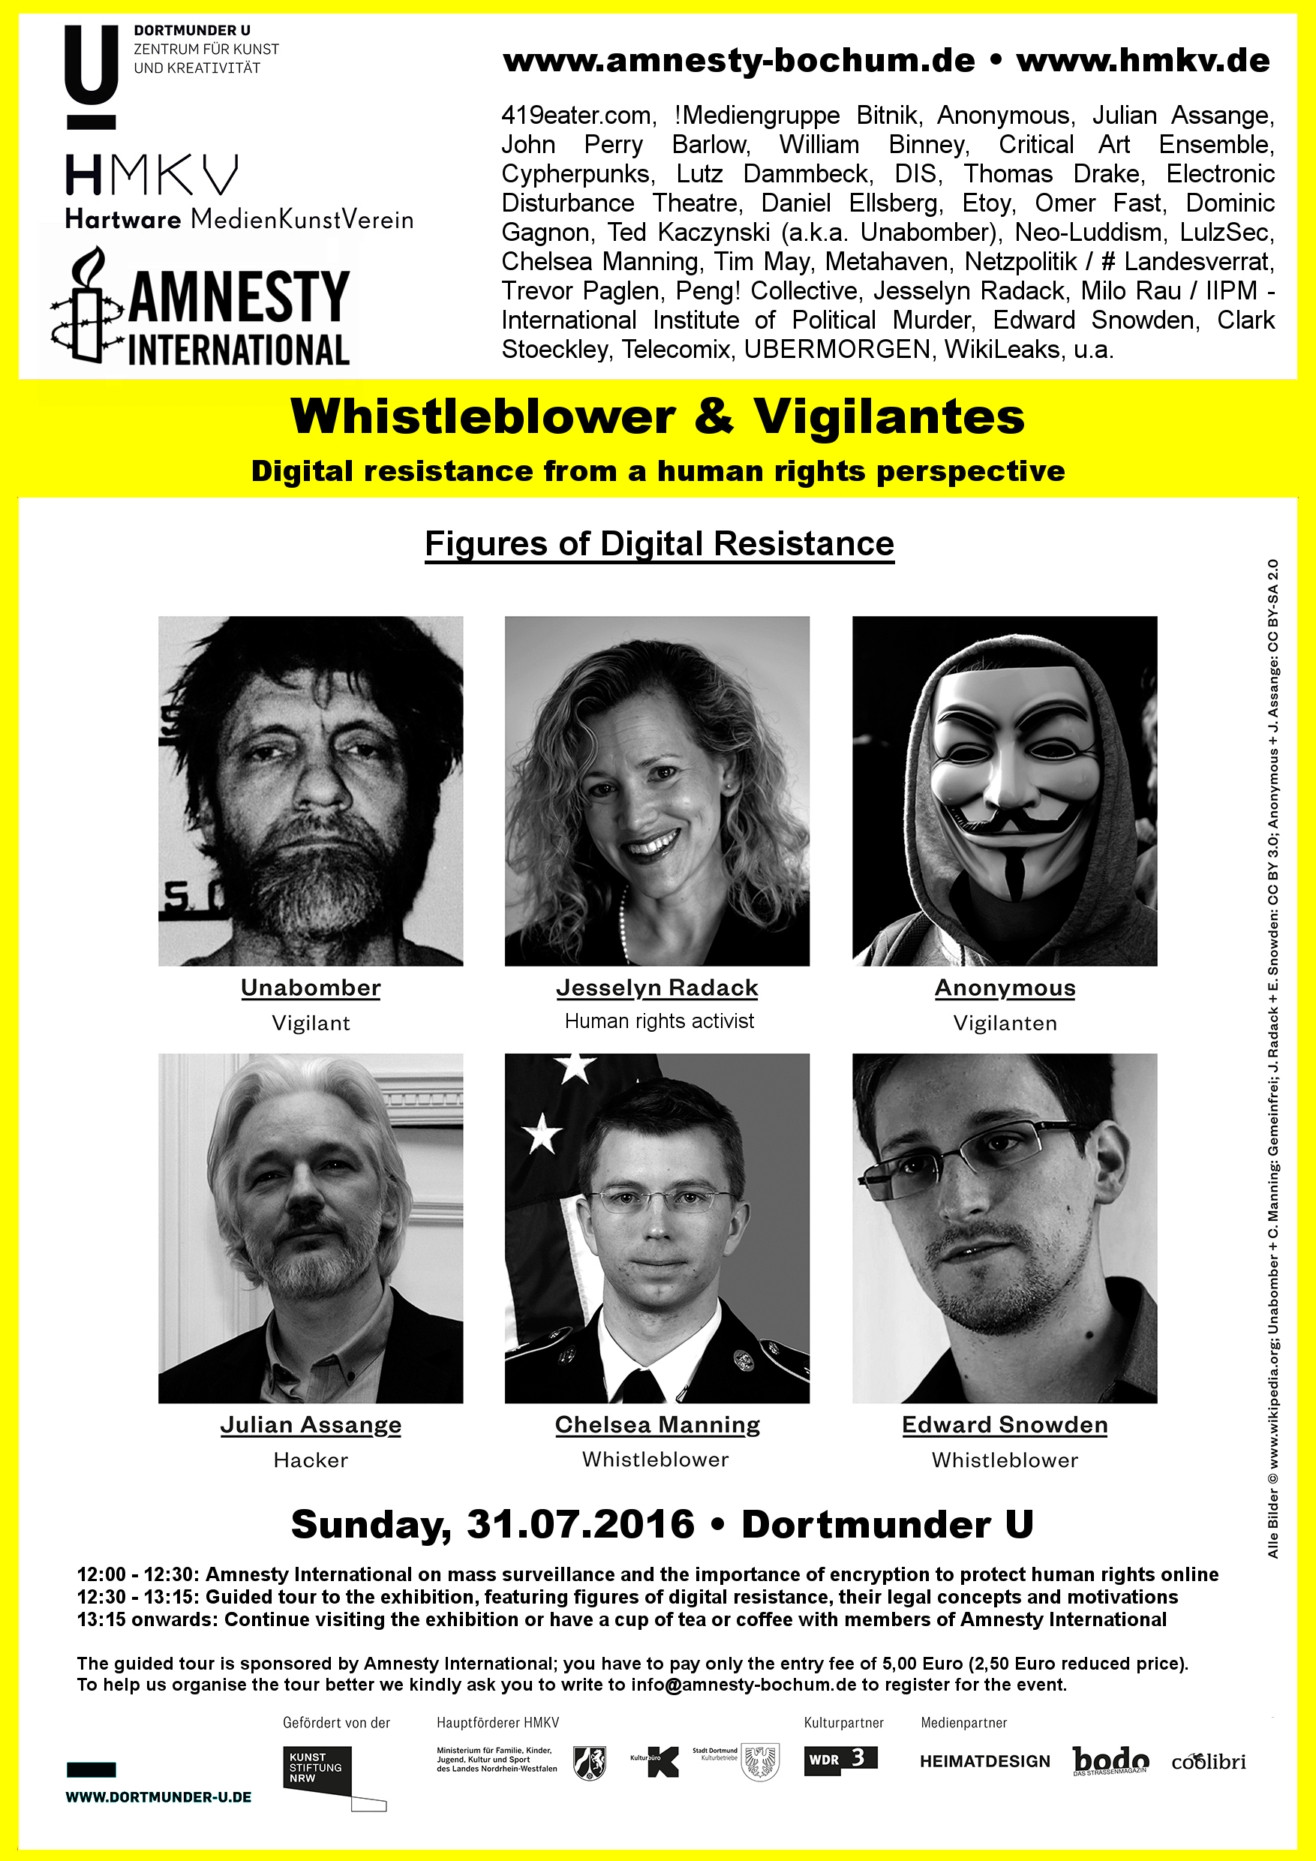 Whistleblowers & Vigilantes – Digital resistance from a human rights perspective